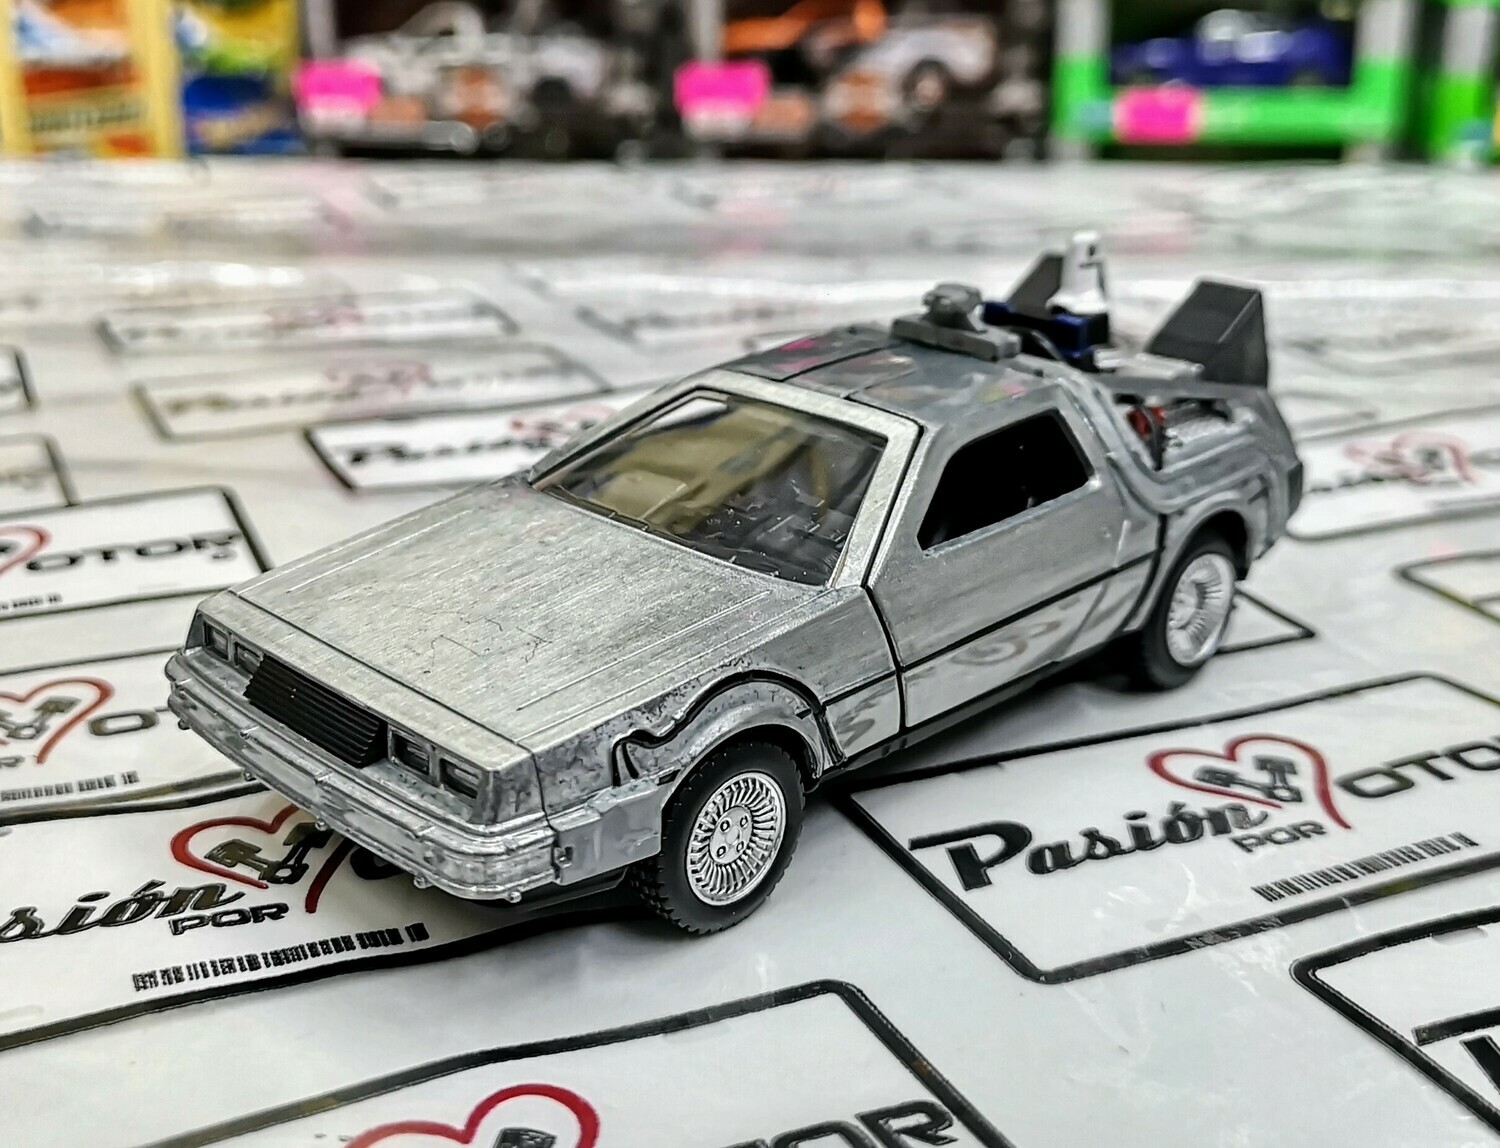 1:32 DMC DeLorean 1981 Time Machine Back To The Future II Jada Toys Hollywood Rides En Display / A Granel